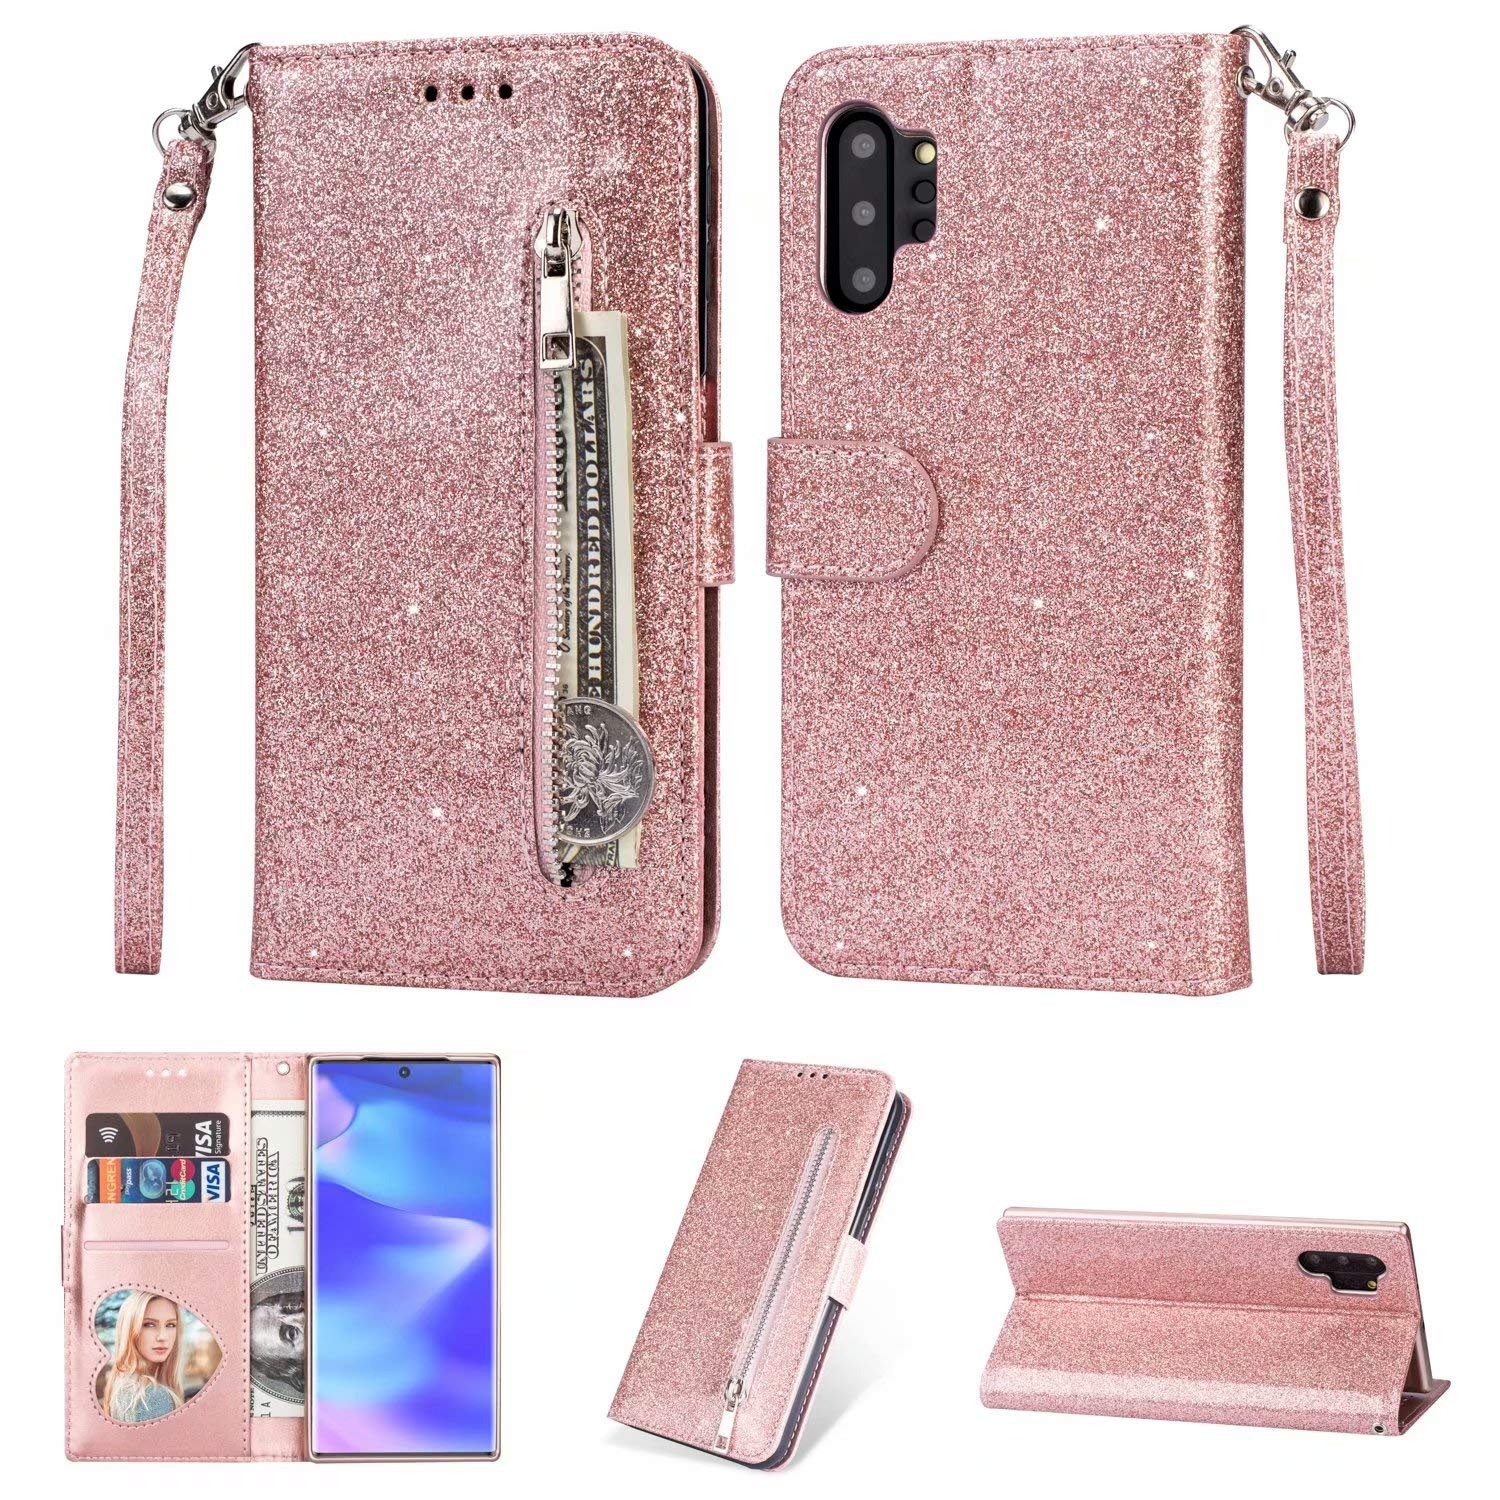 DAMONDY for Galaxy Note 10 Plus Case,Bling Zipper Stand Wallet Purse Card Slot ID Holders Design Flip Leather Cover Pocket Purse Magnetic Protective for Samsung Galaxy Note 10 Plus 2019-rose Gold by DAMONDY